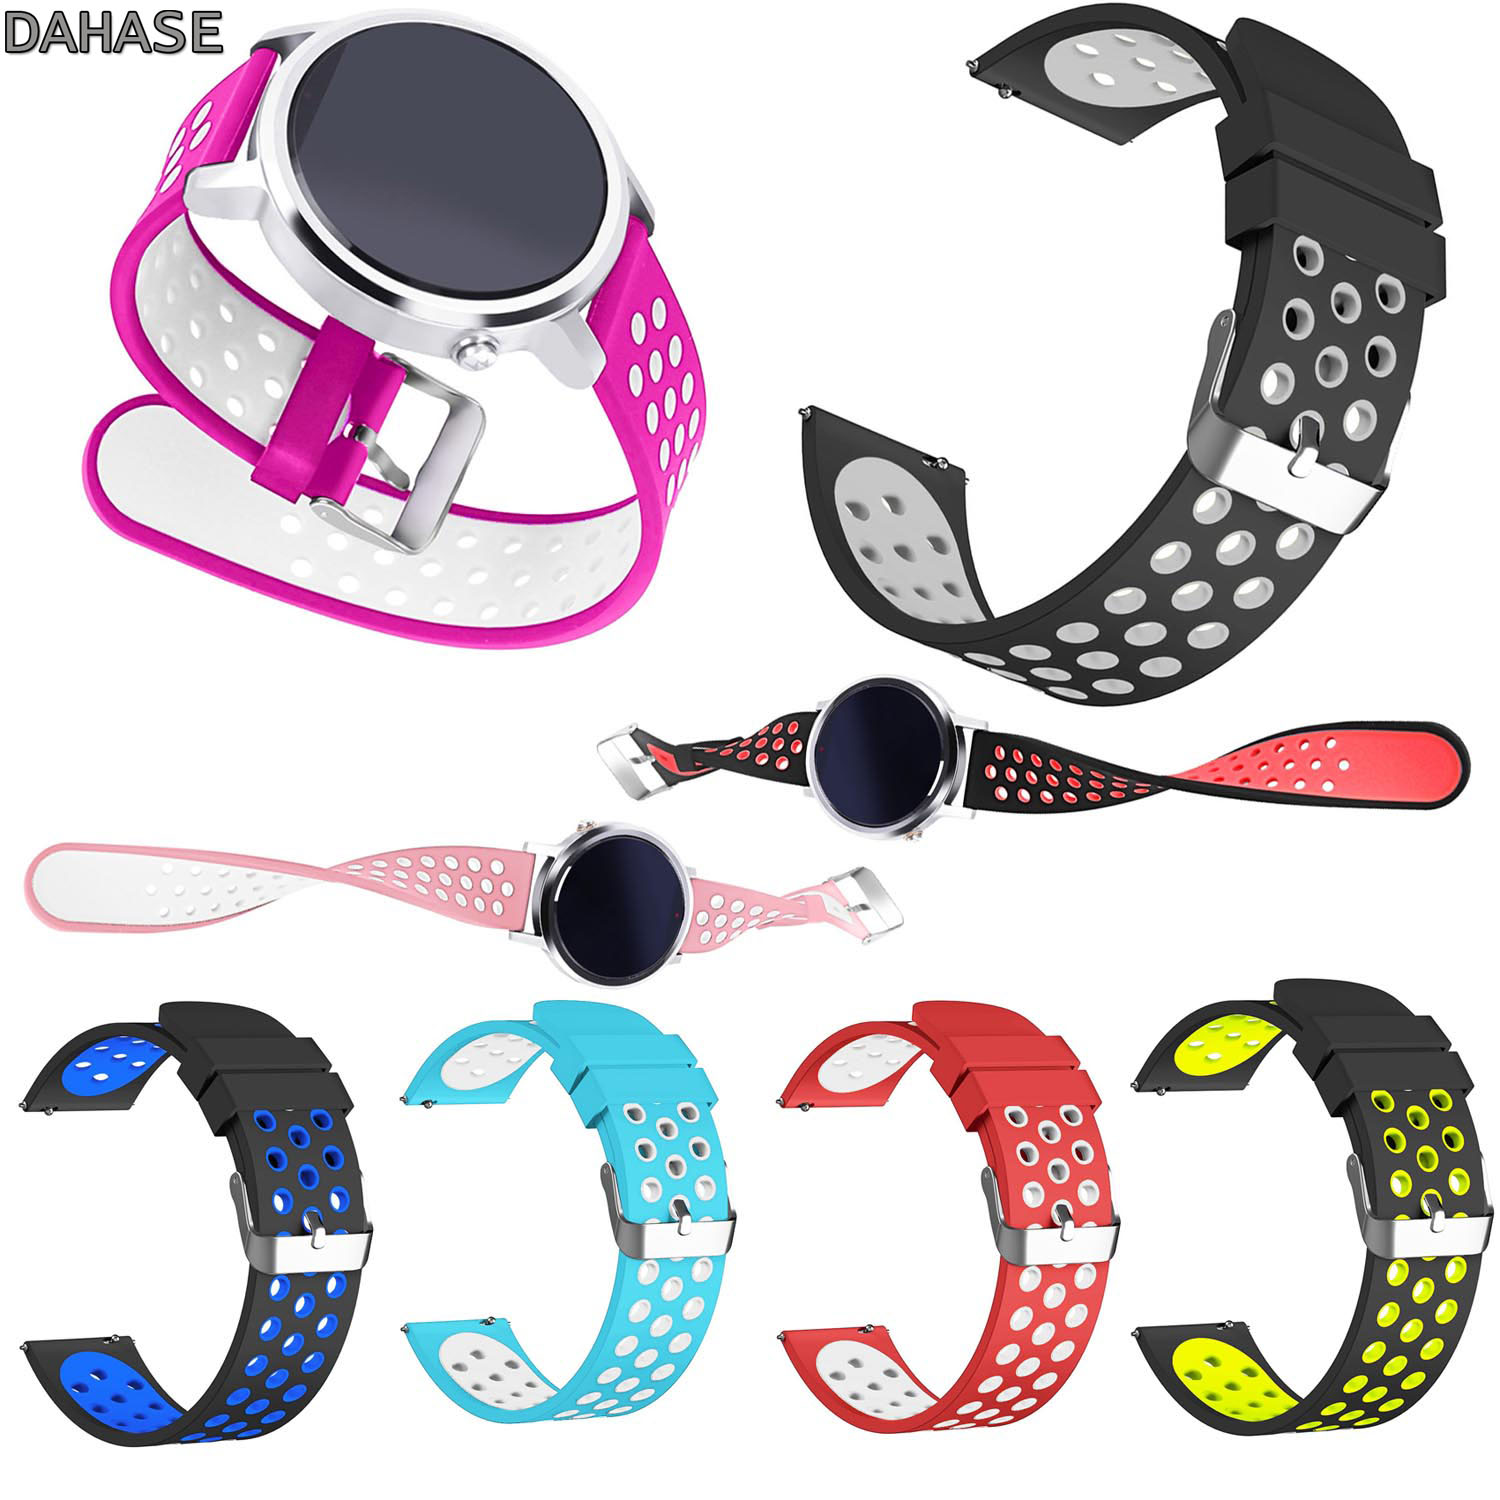 DAHASE Breathable Dual Colors Soft Silicone Strap for Huawei Smart Watch 2 Sport Band 20mm / Huawei Watch 1st Bracelet 18mm polar soft strap st xxxl gen